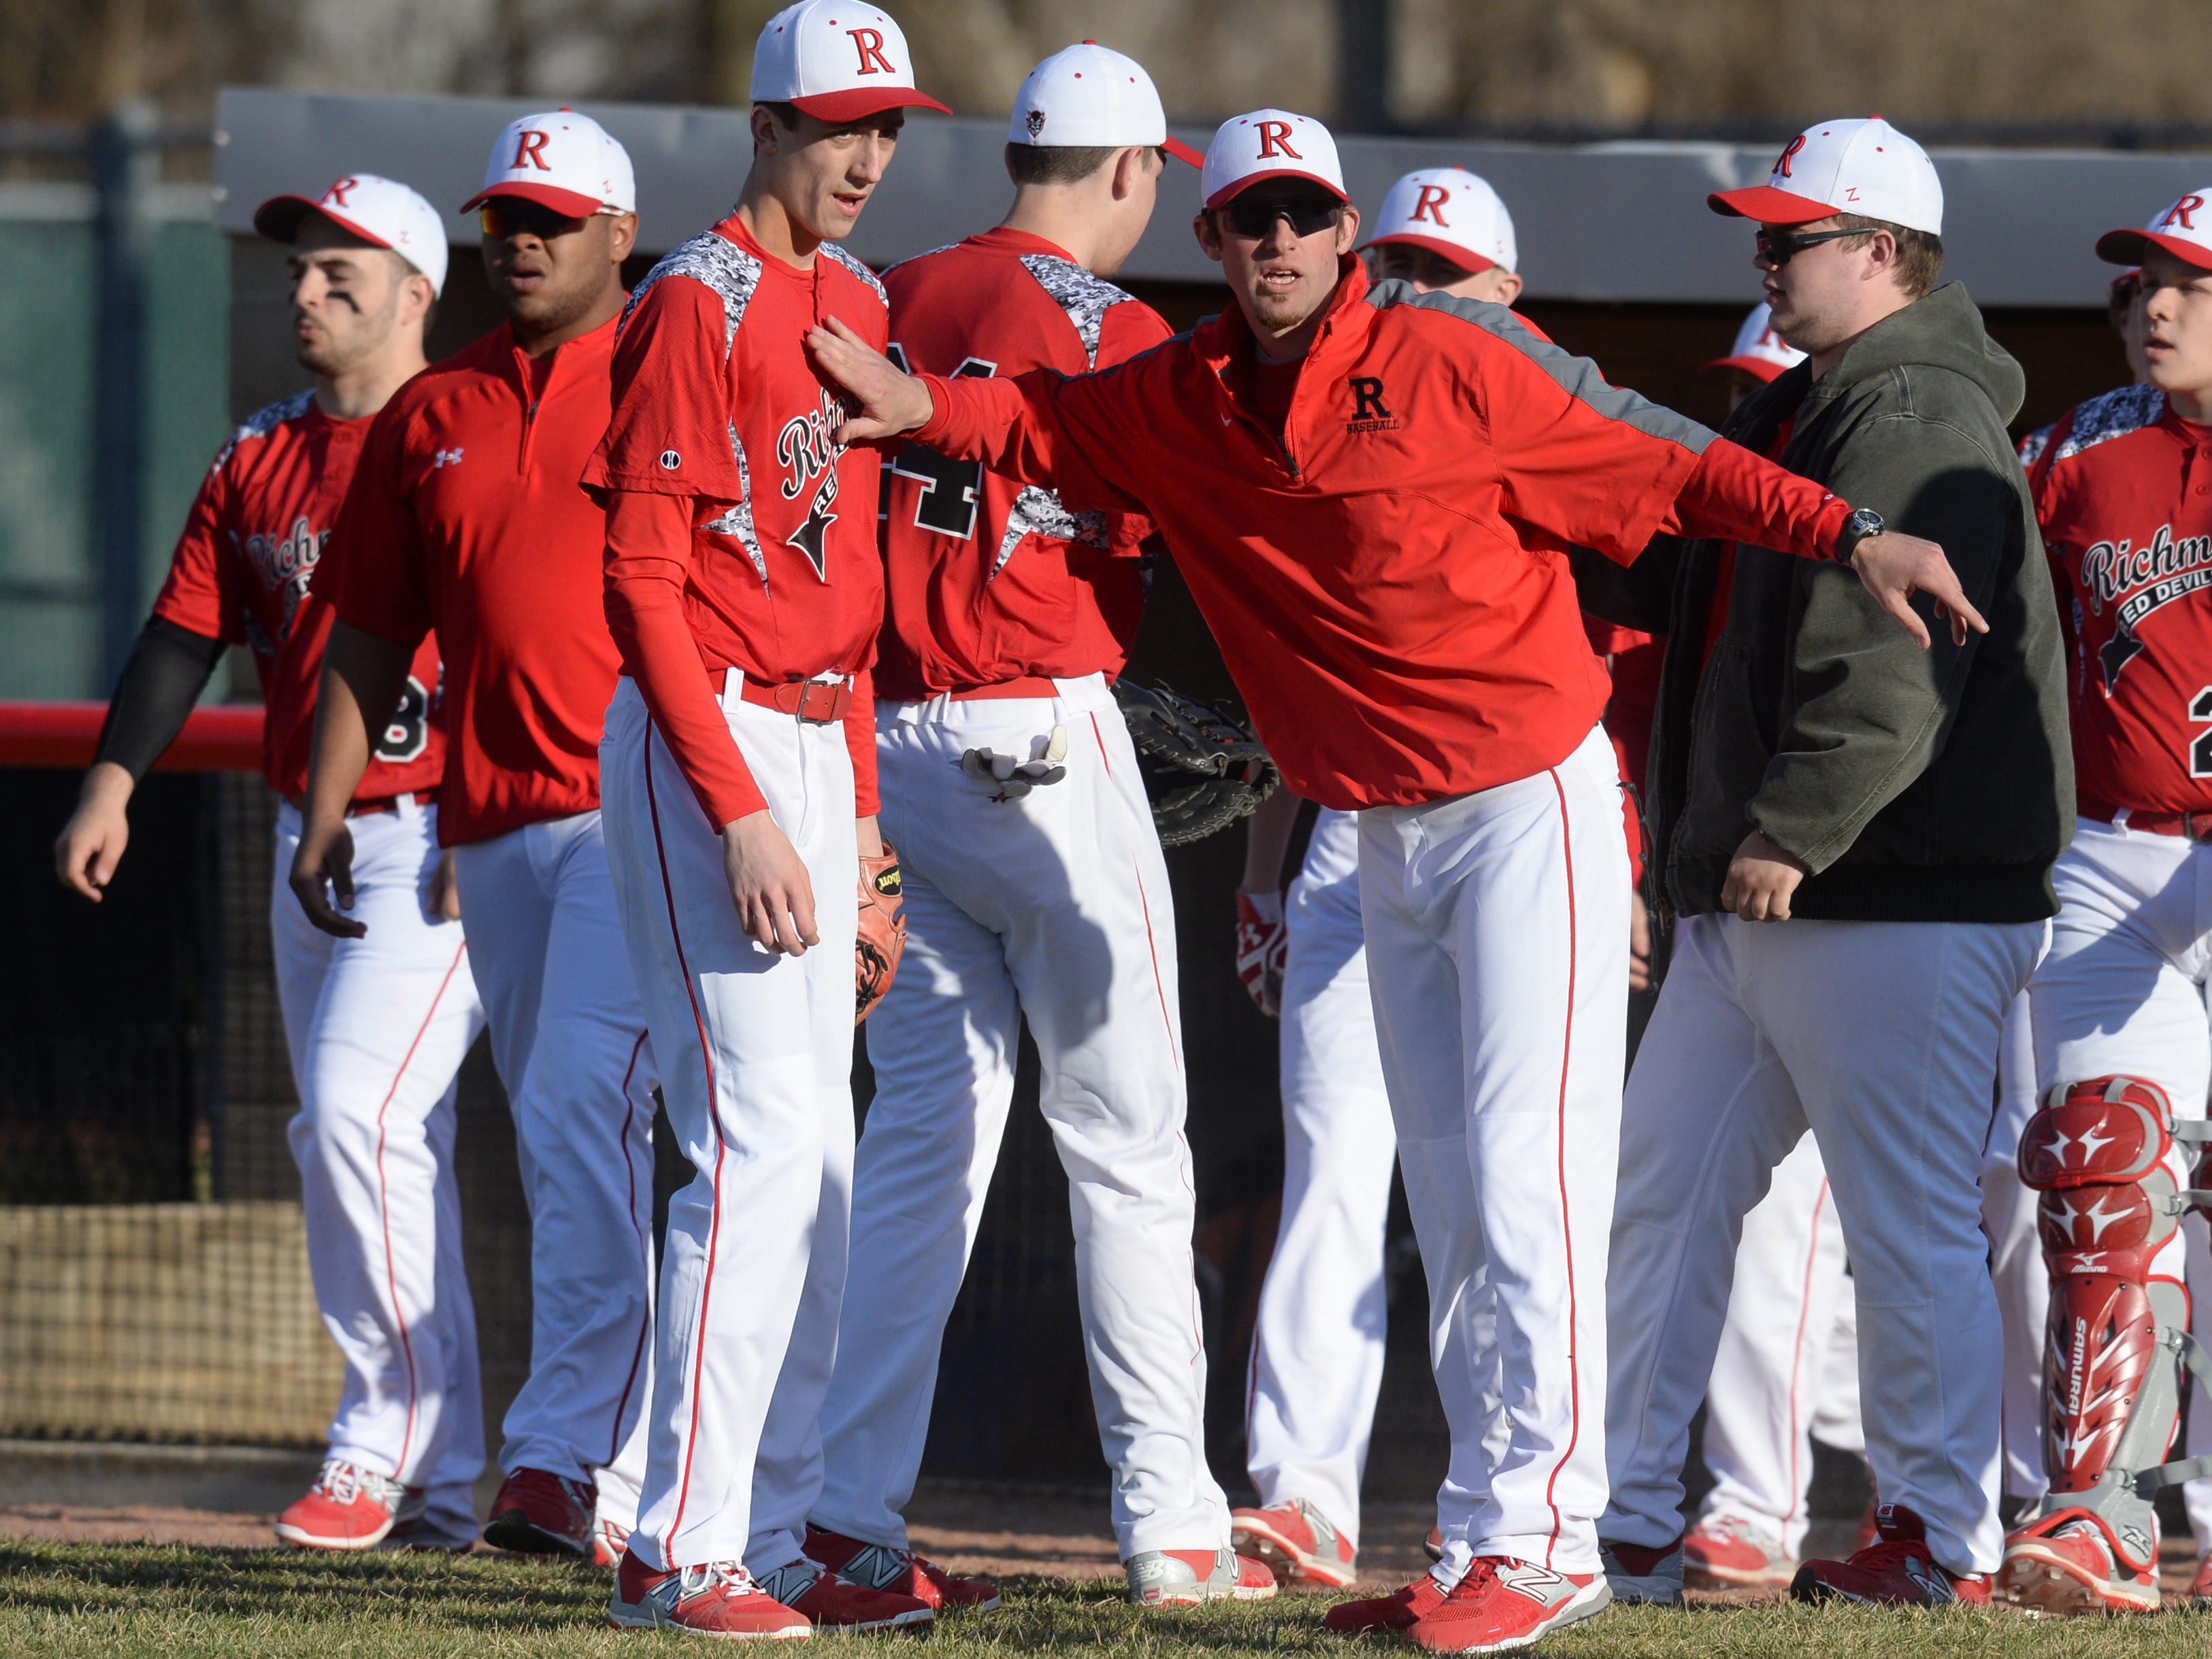 Richmond baseball coach Tyler Lairson greets players as they return to the dugout during a baseball game Tuesday, March 31, 2015, on John Cate Field at McBride Stadium.